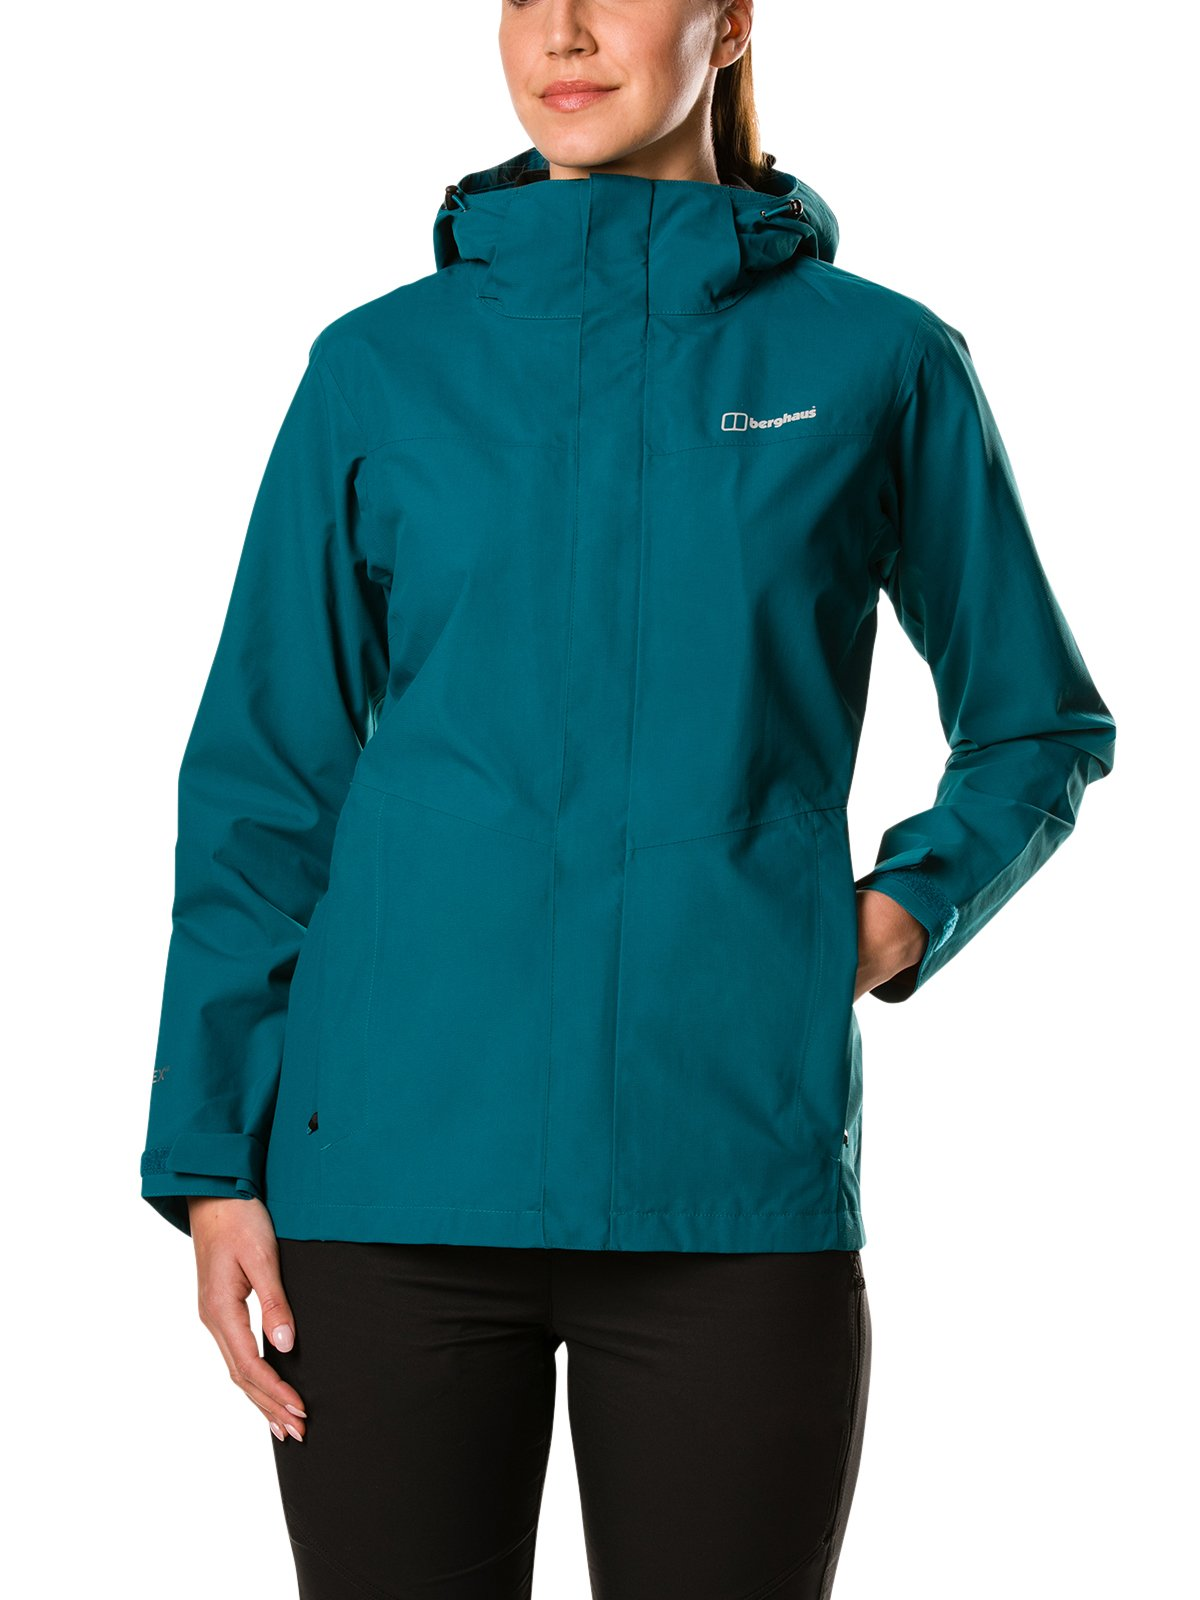 71BMzzt5qJL - 'Berghaus Women's Hillwalker Interactive Gore-Tex Waterproof Jacket